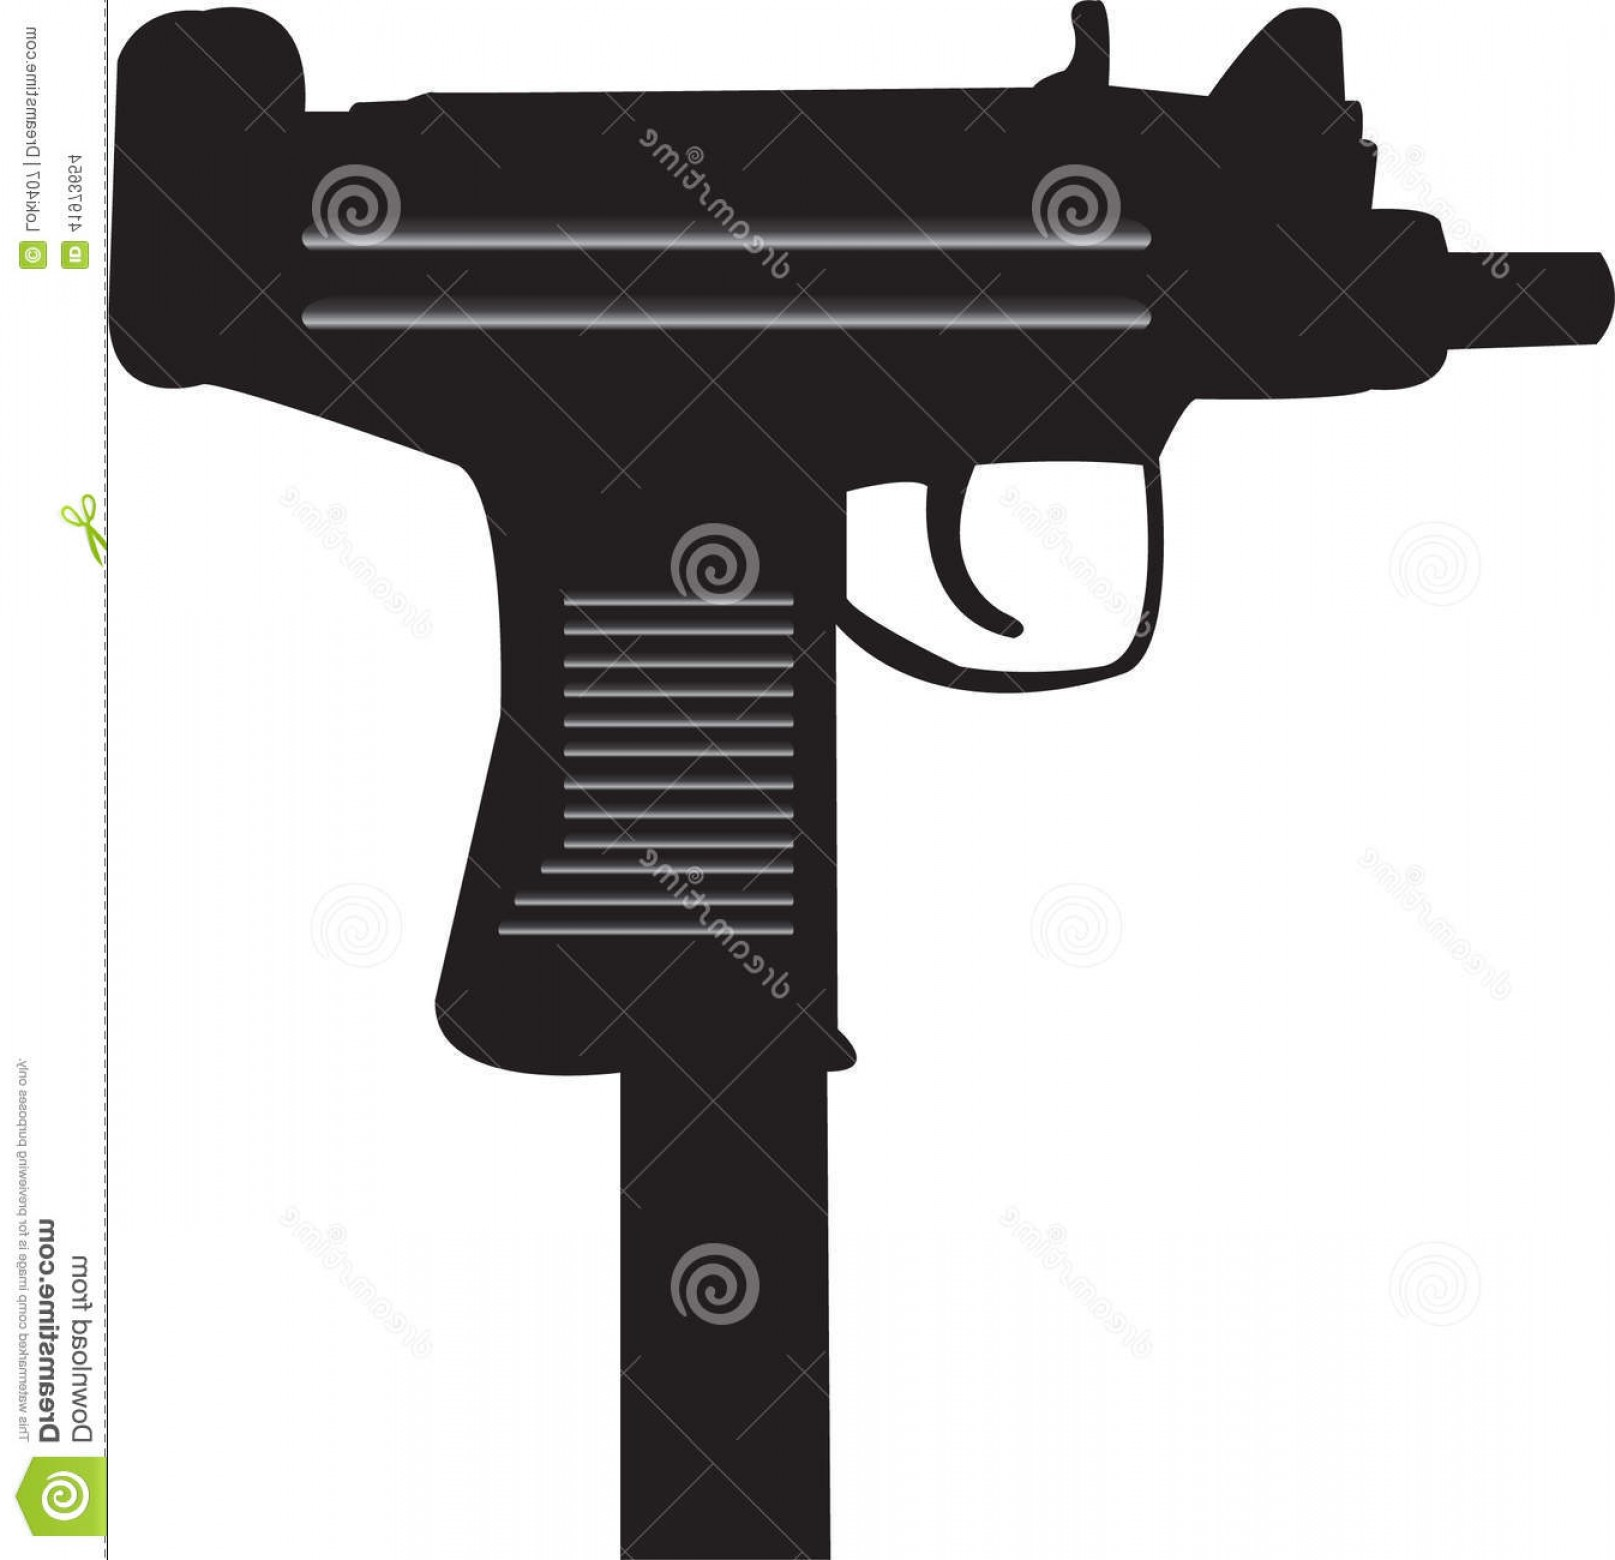 Vector Uzi Review: Stock Illustration Uzi Machine Gun Vector Image